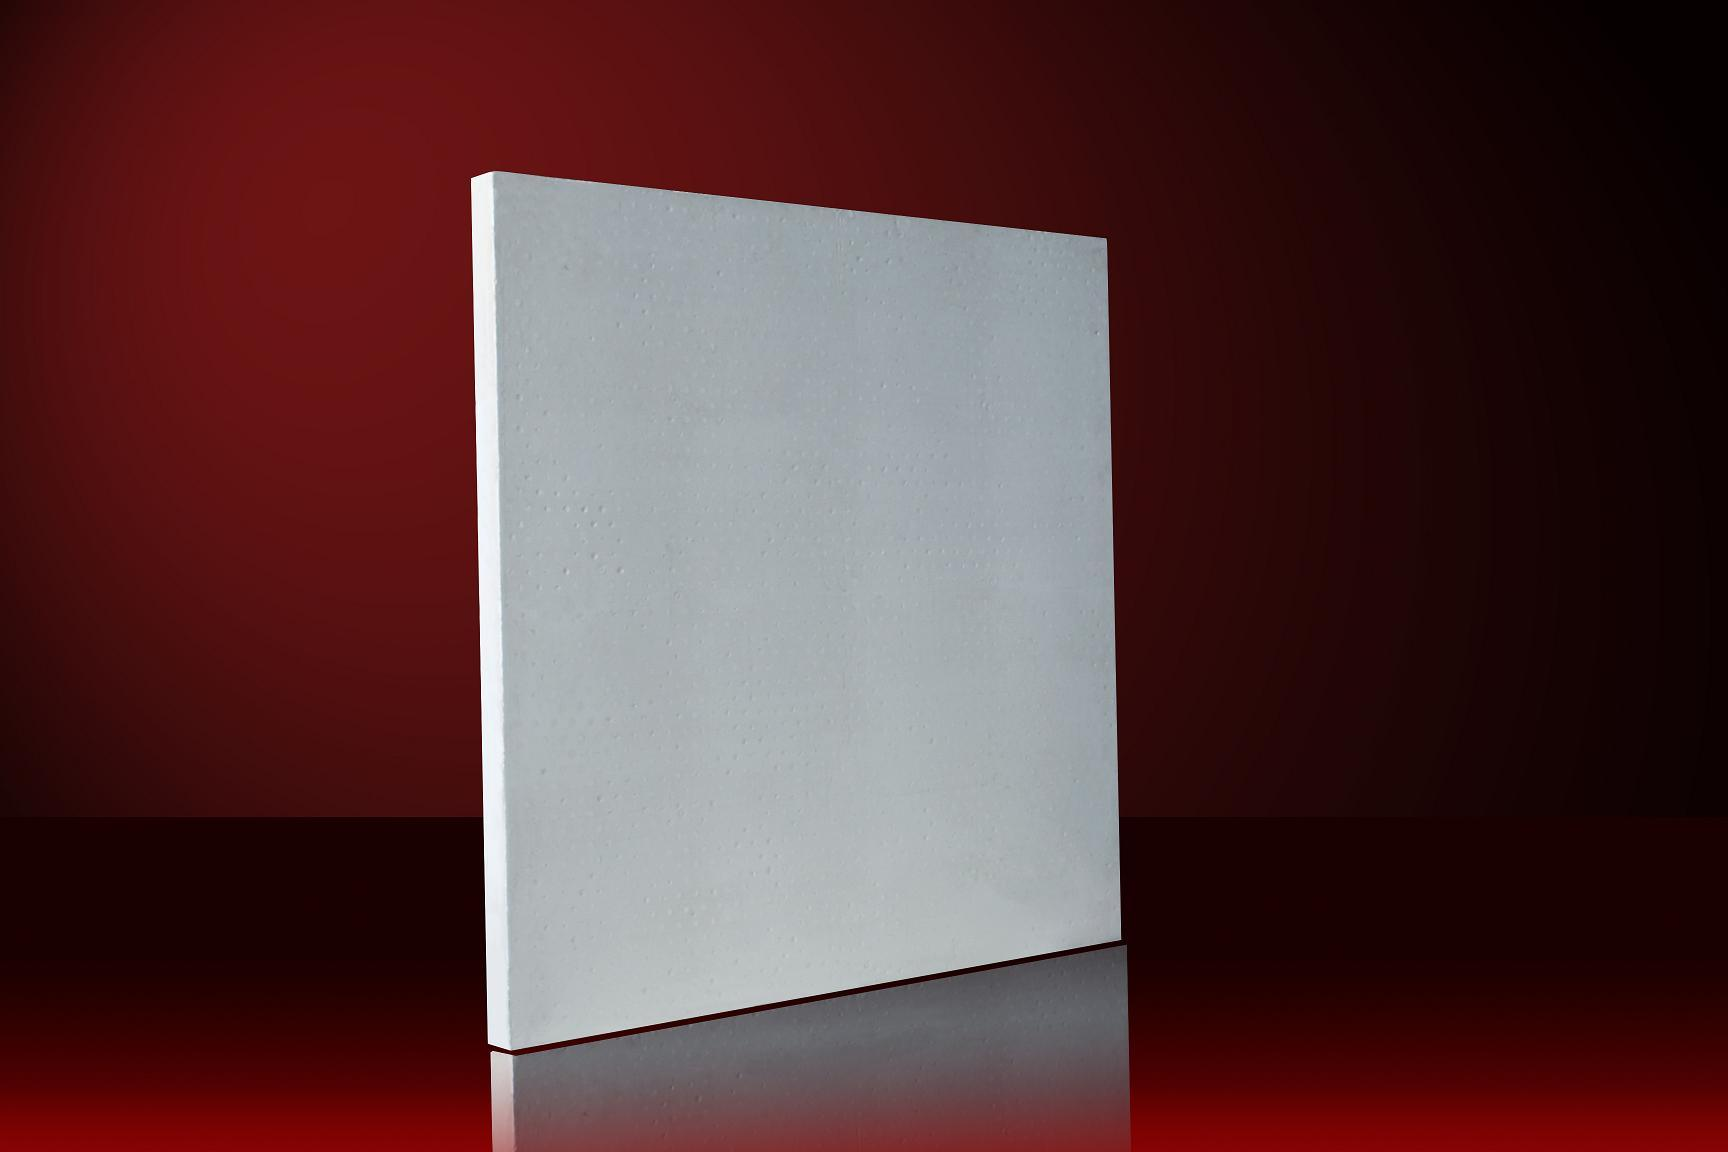 Calcium Silicate Board Home : China calcium silicate insulation board yd hs